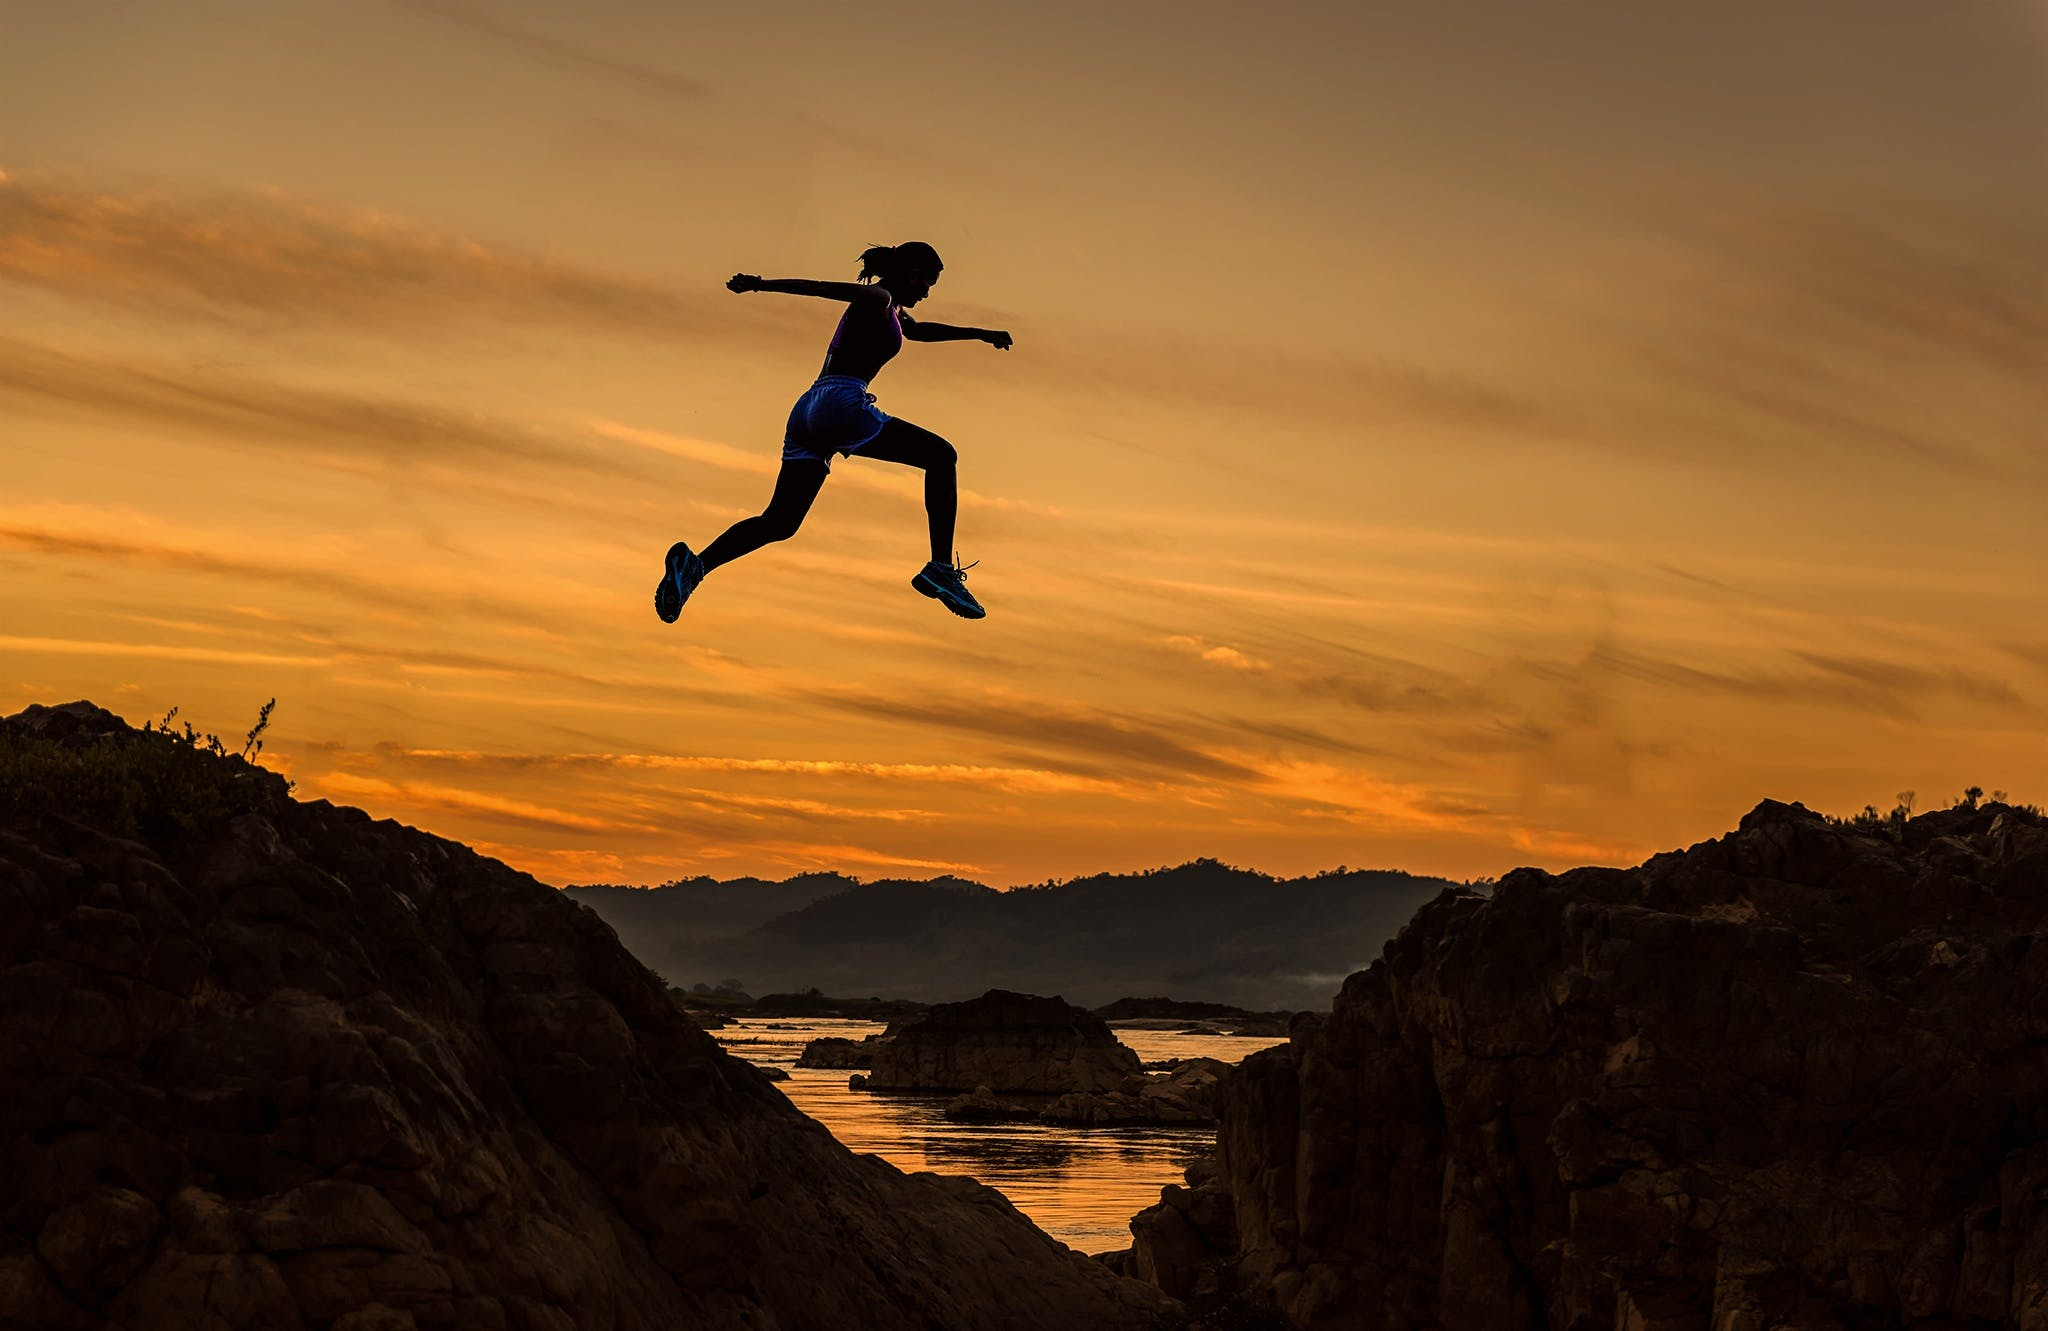 Man Jumping on Landscape at Sunset